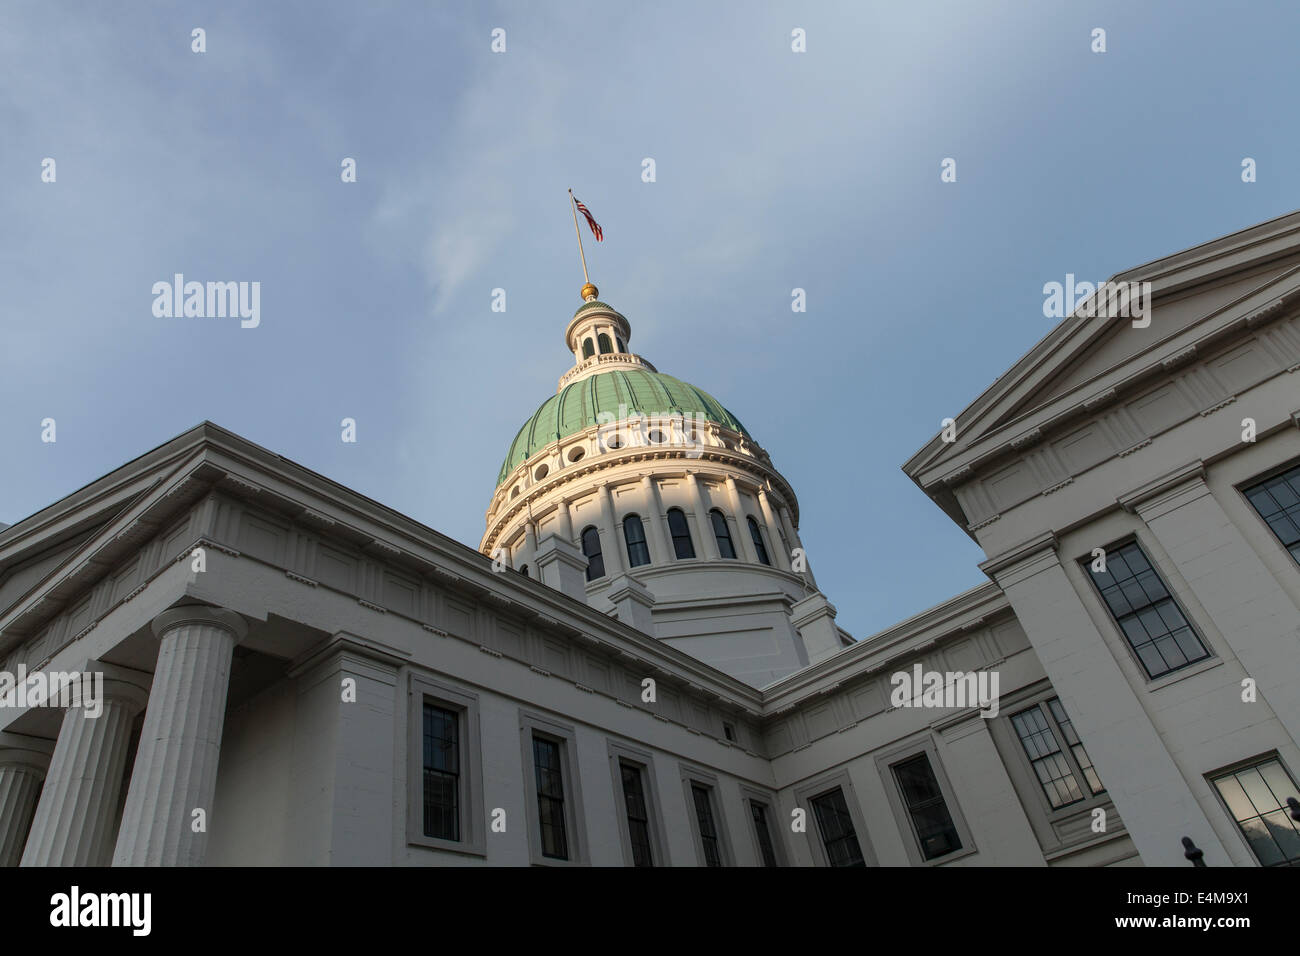 View of part of the green dome court room building in St Louis Missouri USA with a spectacular angle - Stock Image